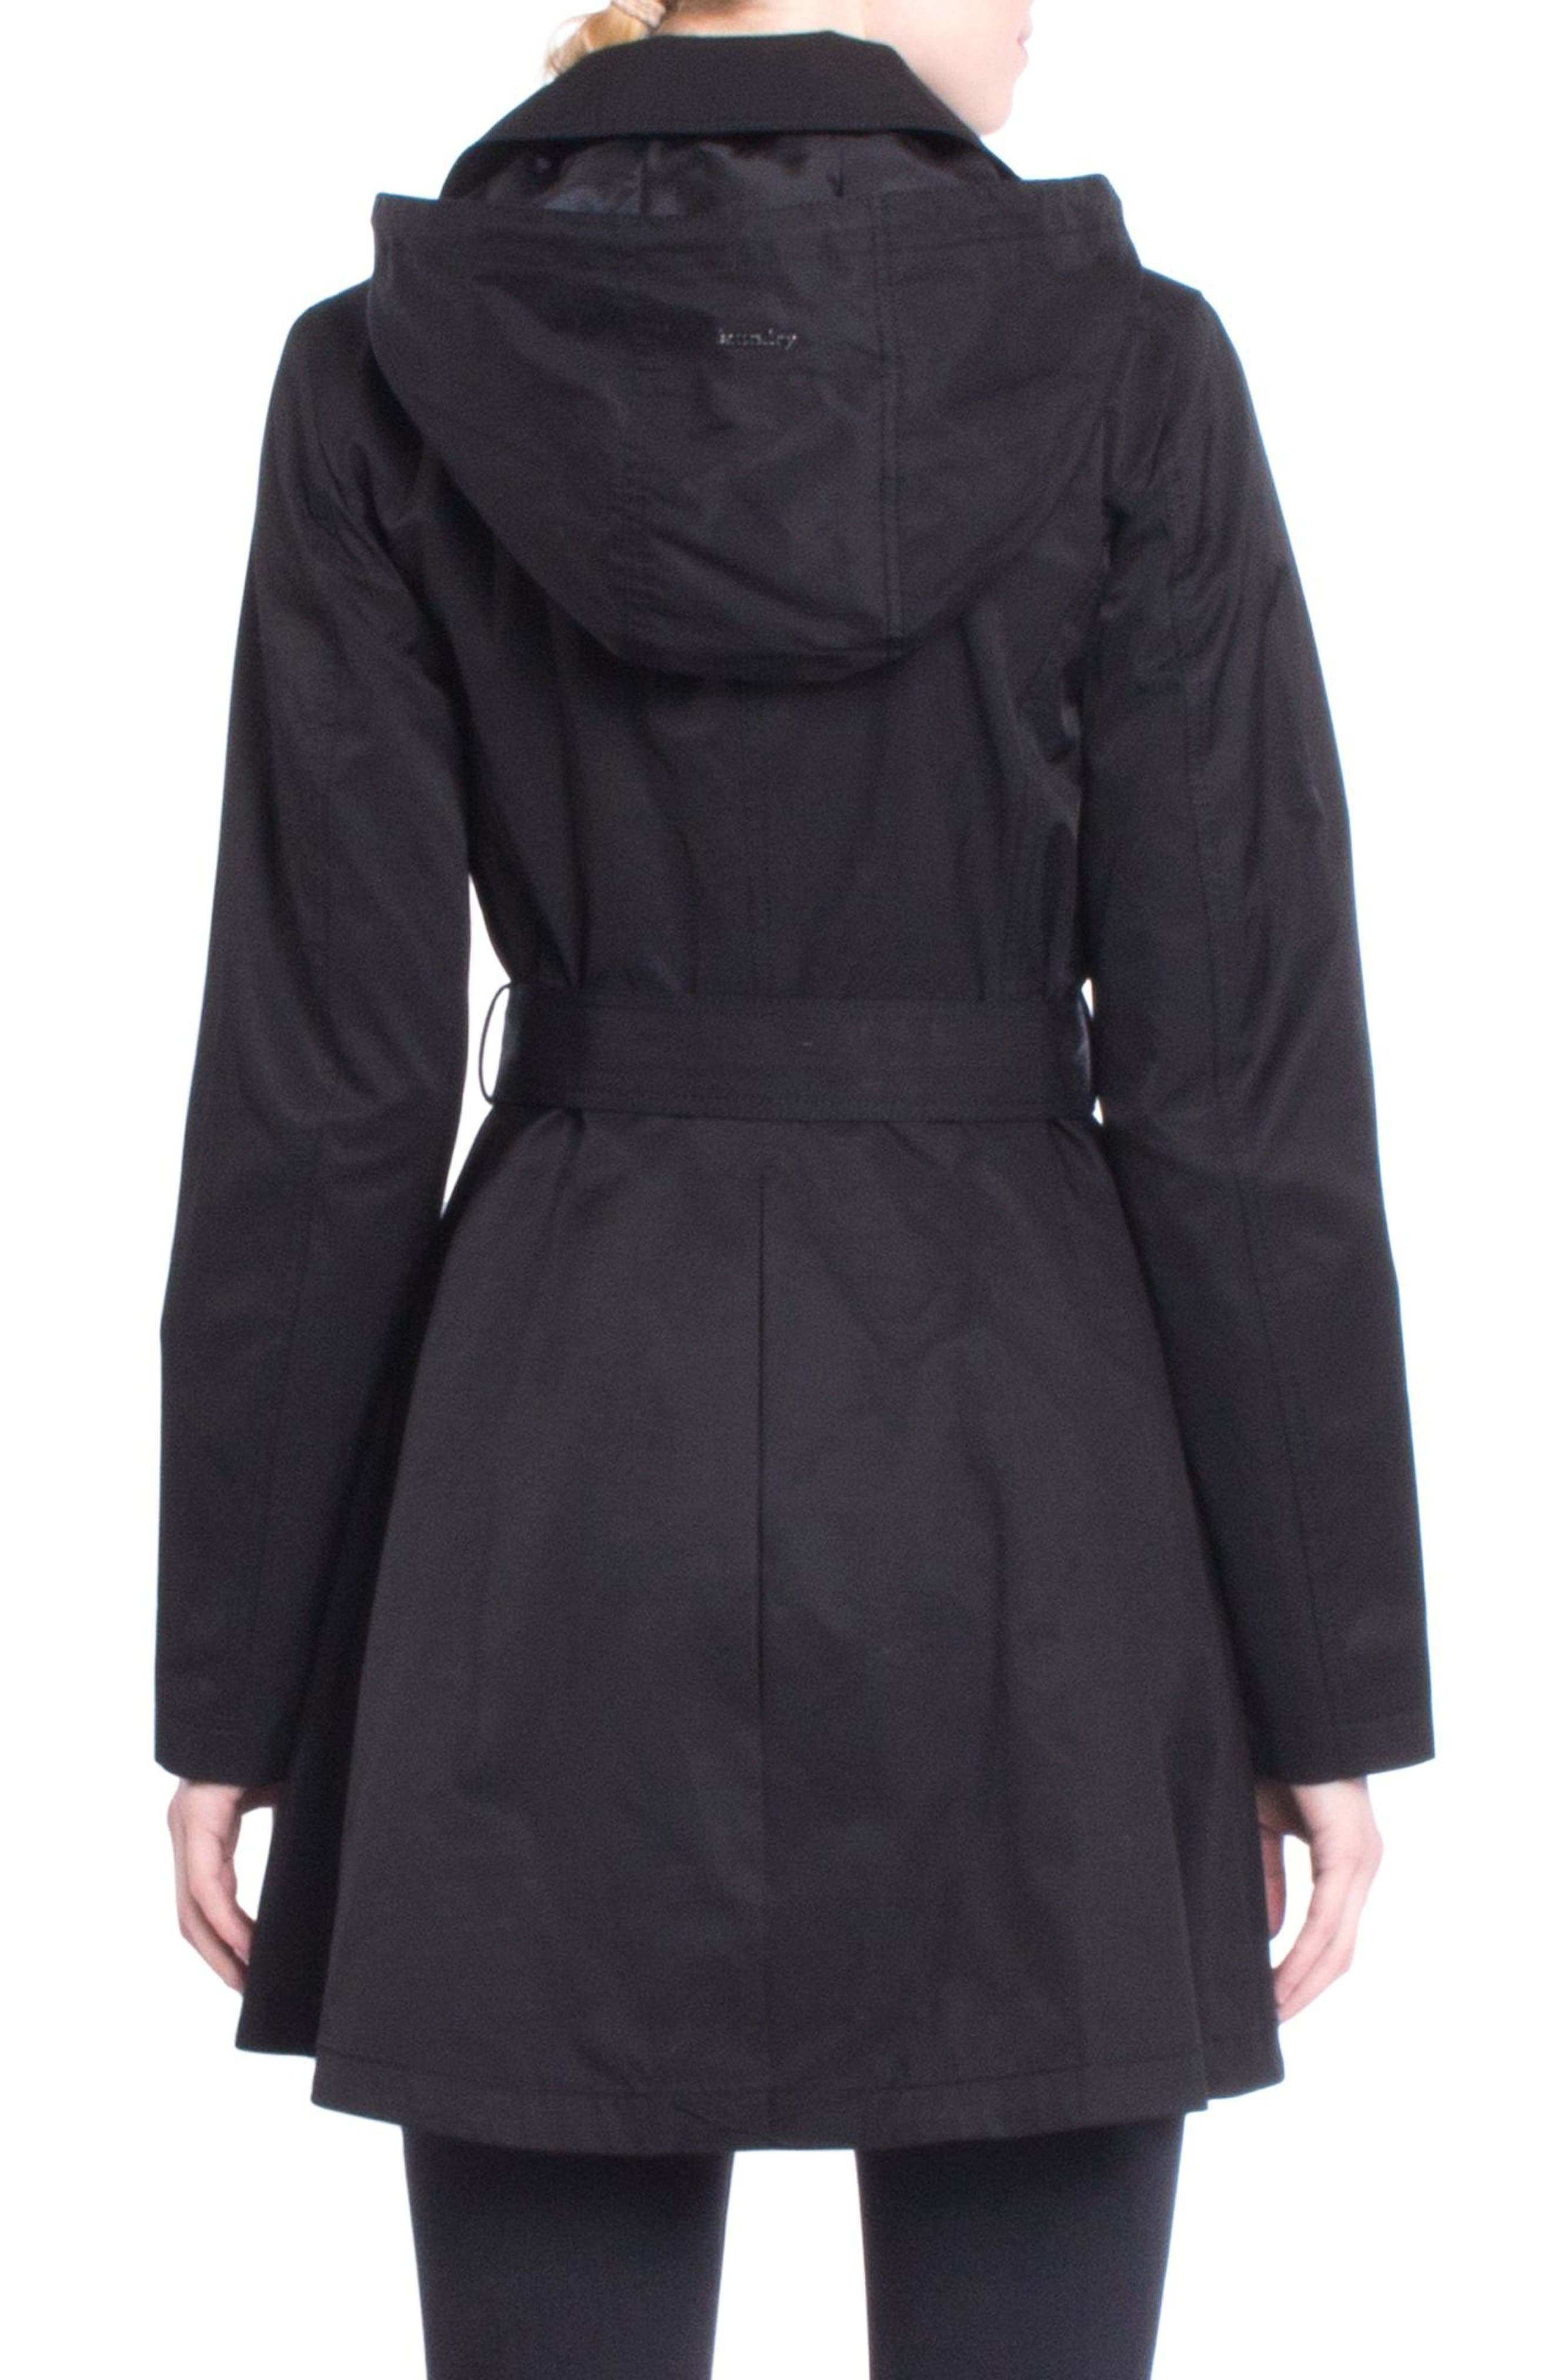 Alternate Image 2  - Laundry by Shelli Segal Fit & Flare Trench Coat